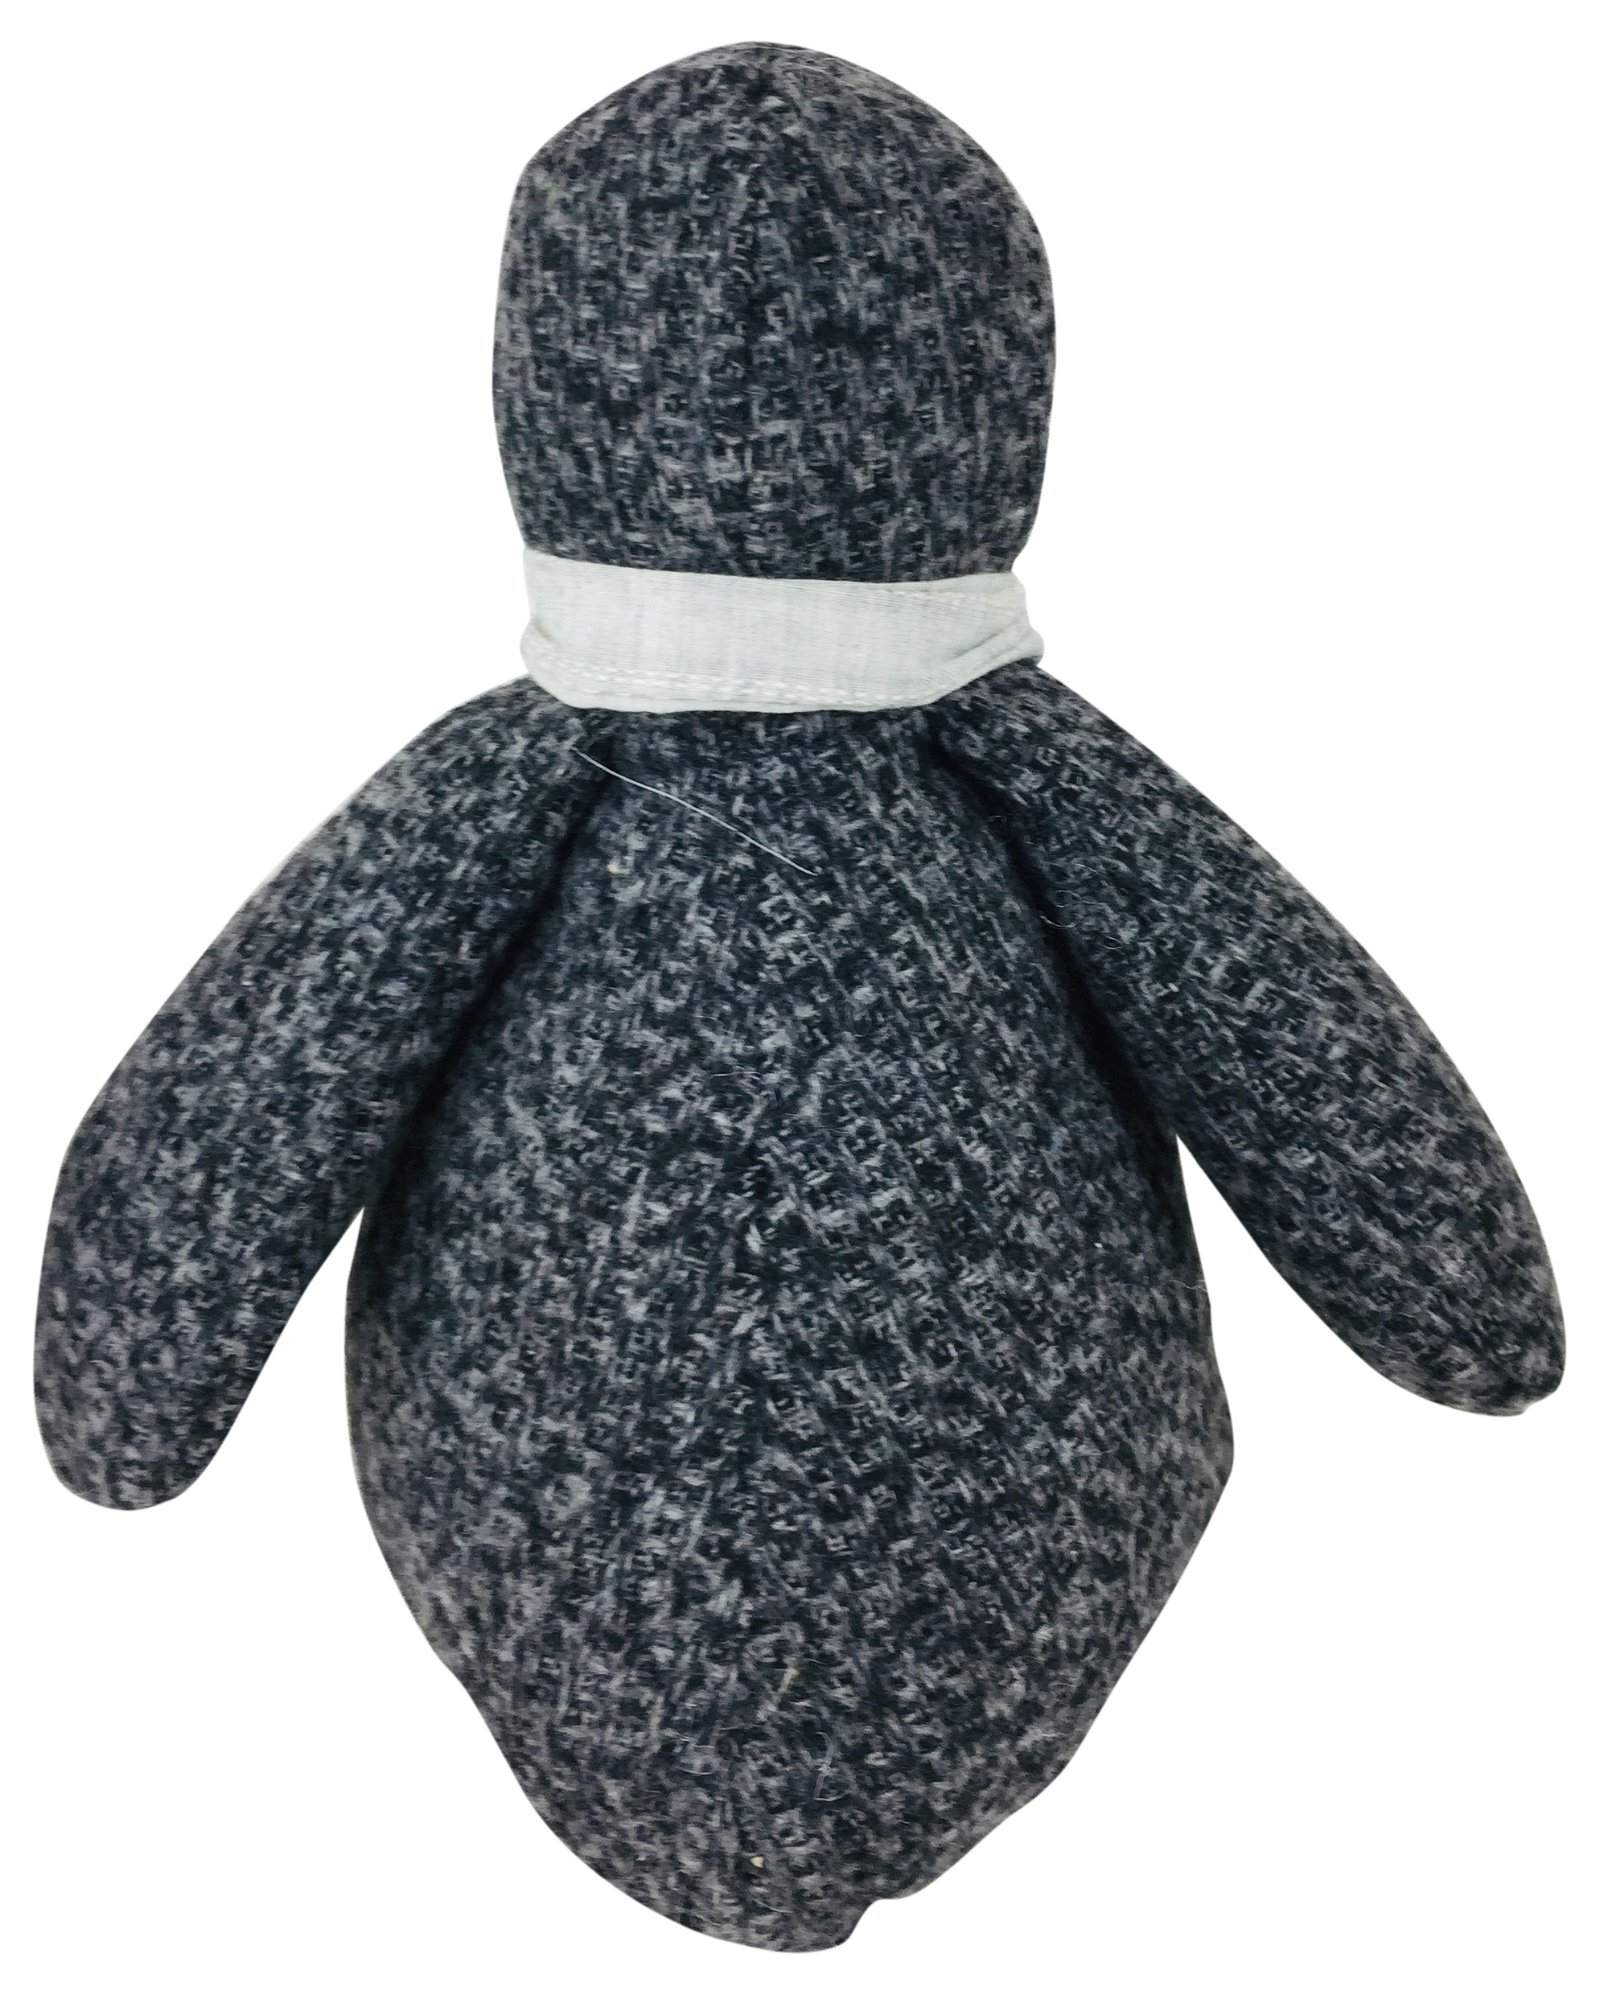 Black Penguin Doorstop